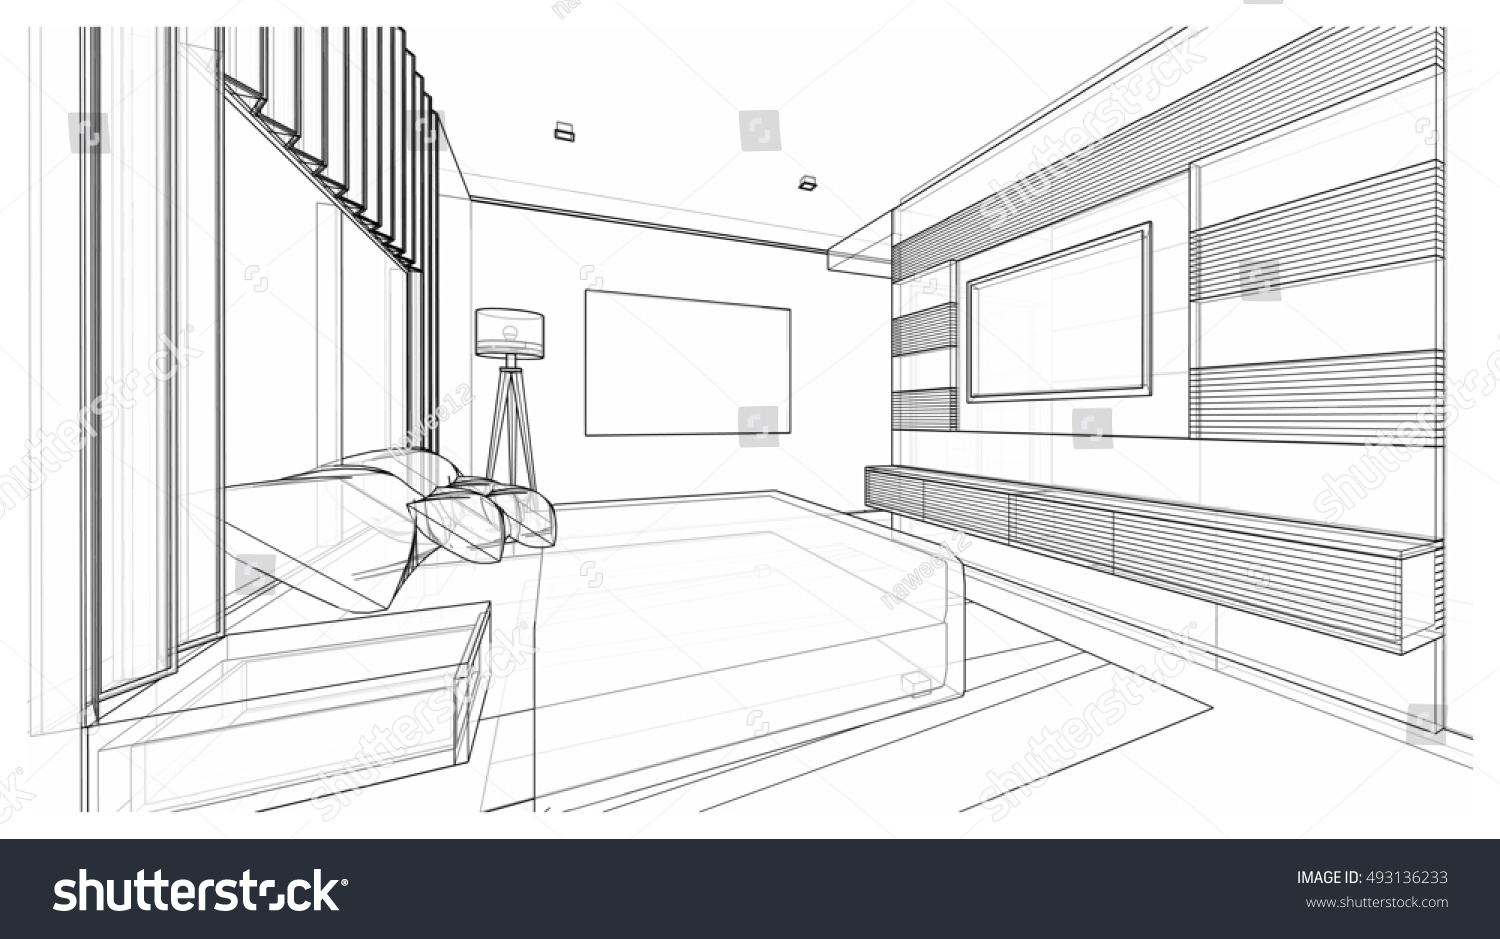 Modern bedroom perspective drawing - Interior Design Of Modern Style Bedroom 3d Wire Frame Sketch Perspective